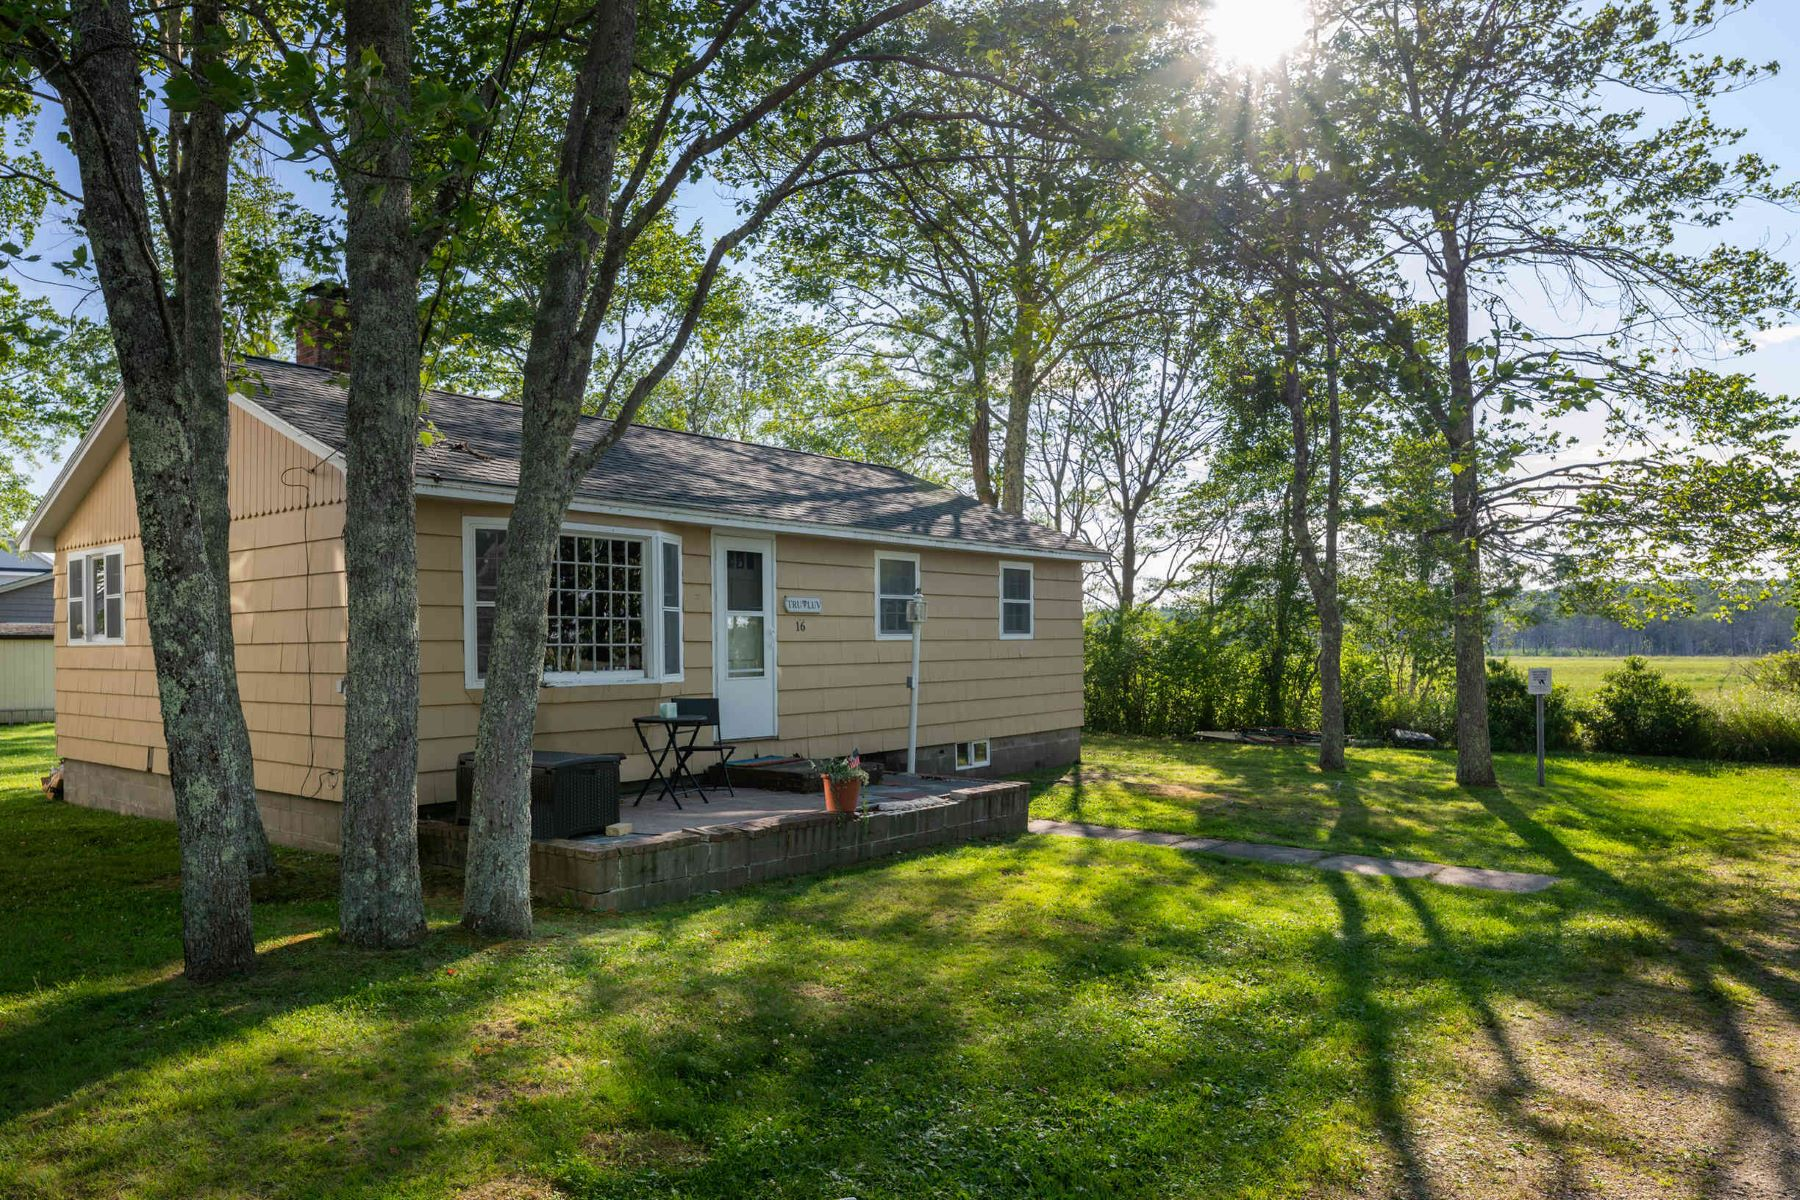 Single Family Homes for Active at Charming Beach Cottage on the Edge of Rachel Carson Reserve 16 Tern Lane Wells, Maine 04090 United States